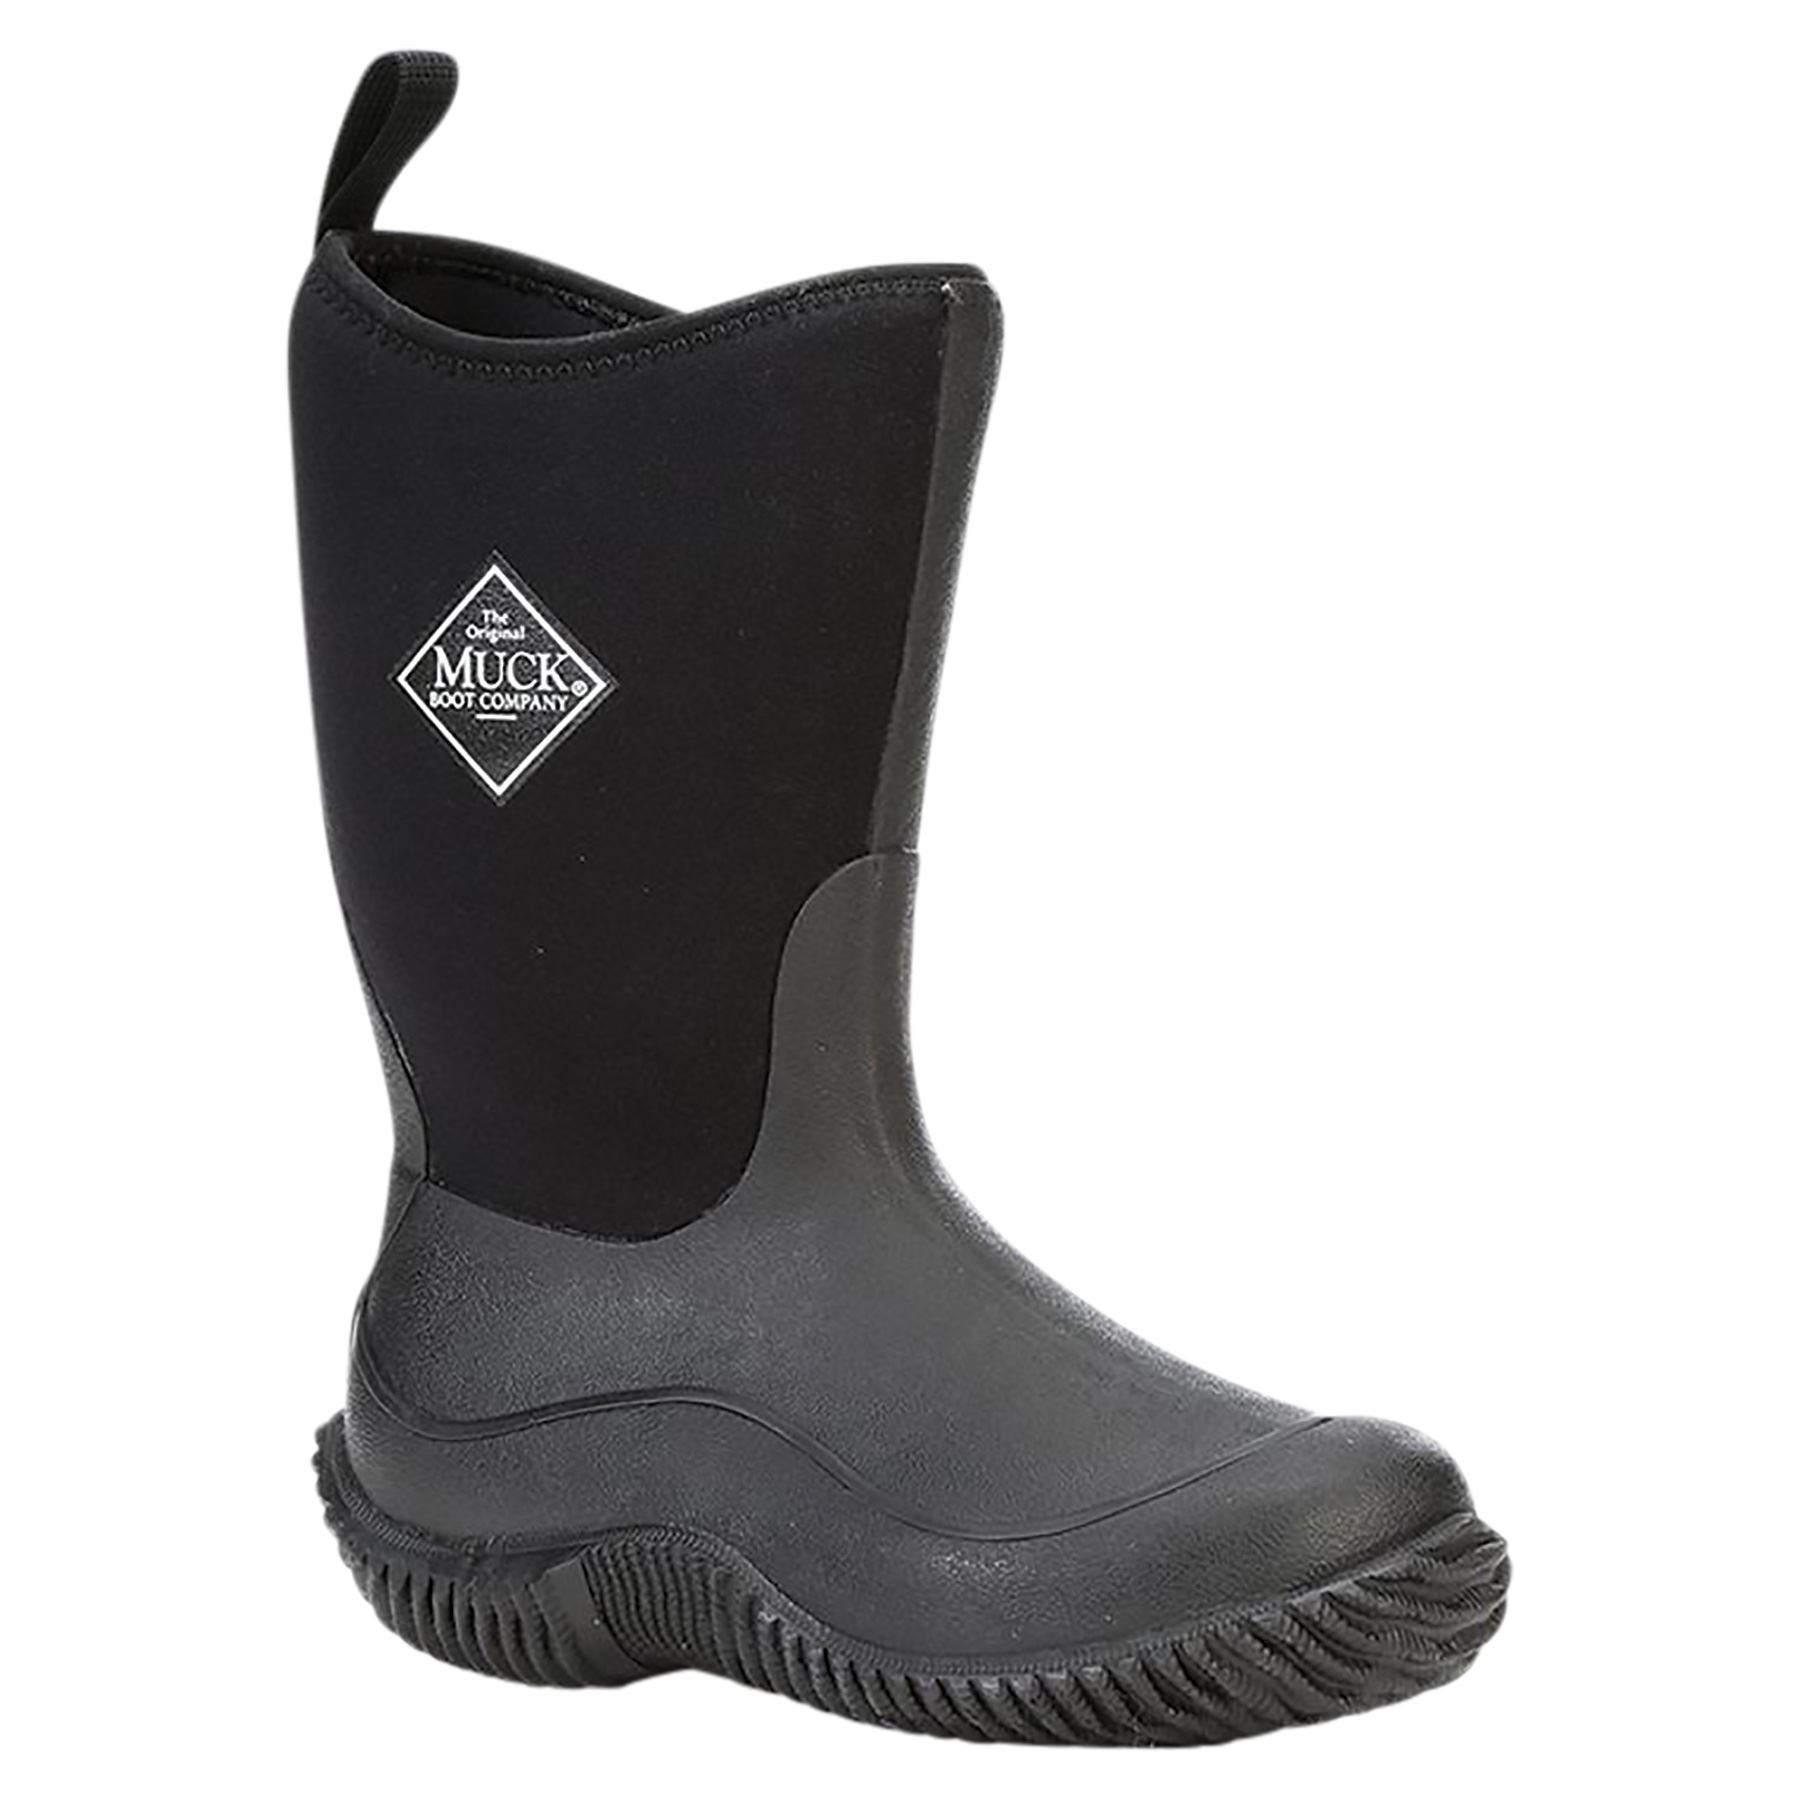 b5515cc6e55 The Original Muck Boot Company® Kids Youth Hale Boots in Apparel ...